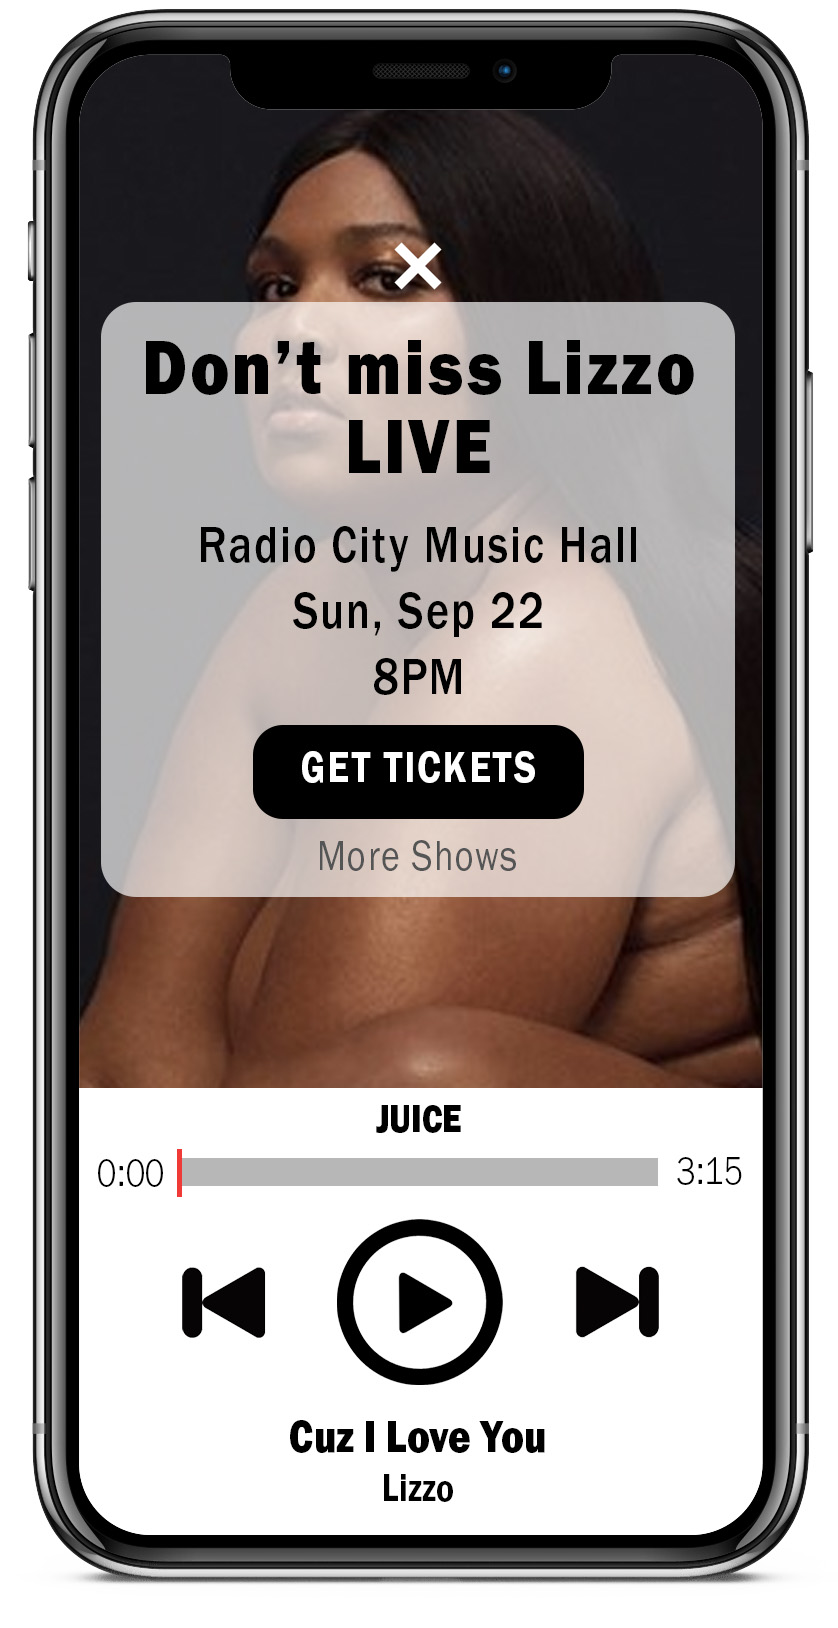 headline: Don't miss Lizzo live           body: Radio City Music hall            Sun, Sep 22           8PM           Buttons: Get Tickets  More Shows